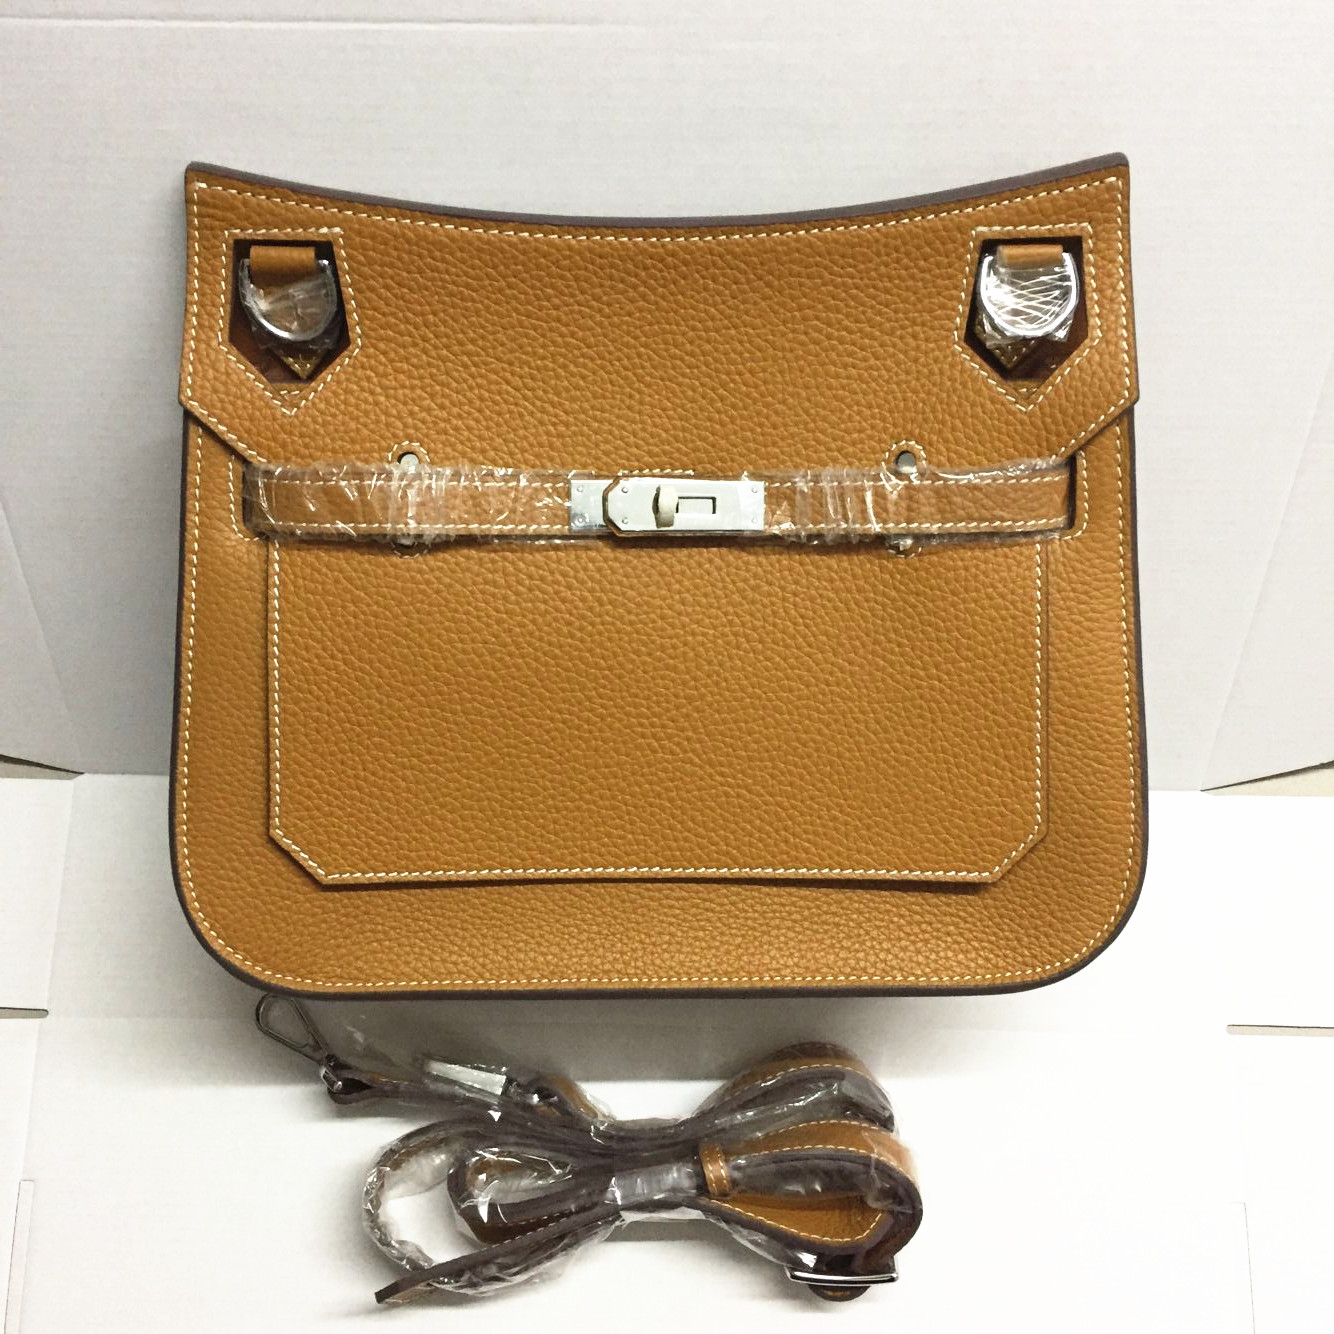 Hermes Jypsiere 28cm Crossbody Bag Brown Silver